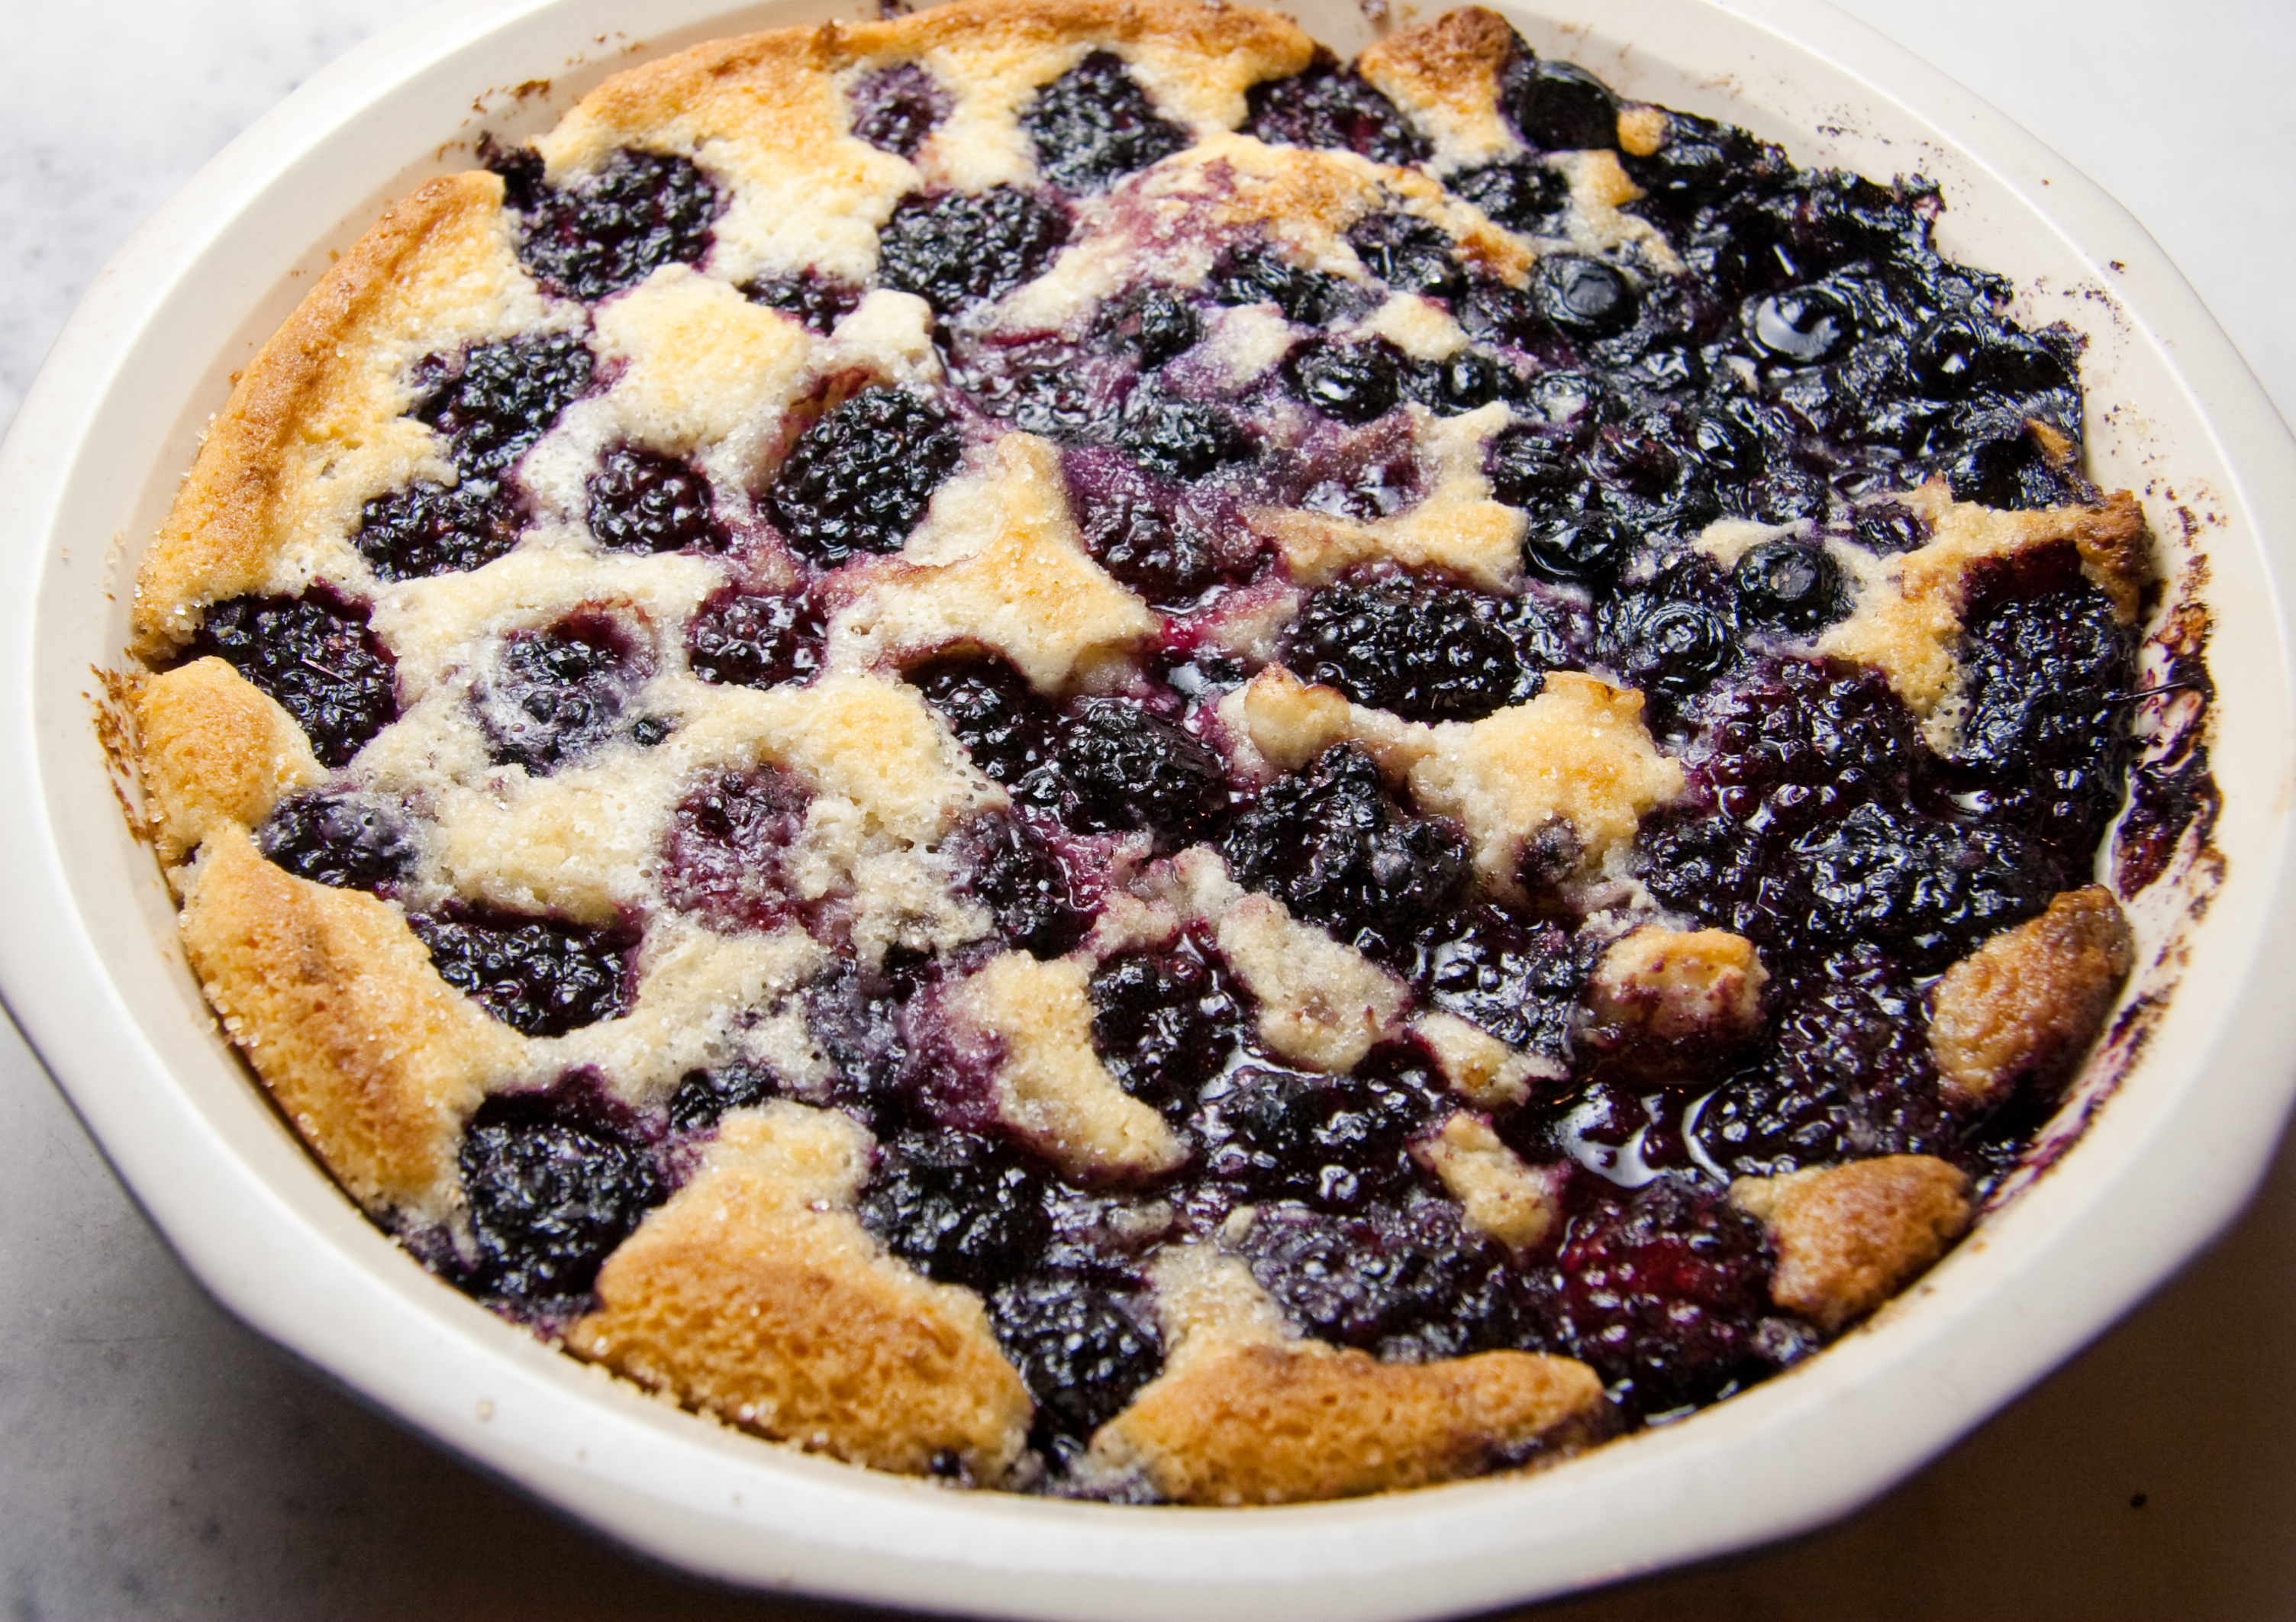 Fresh from the oven Berry Cobbler